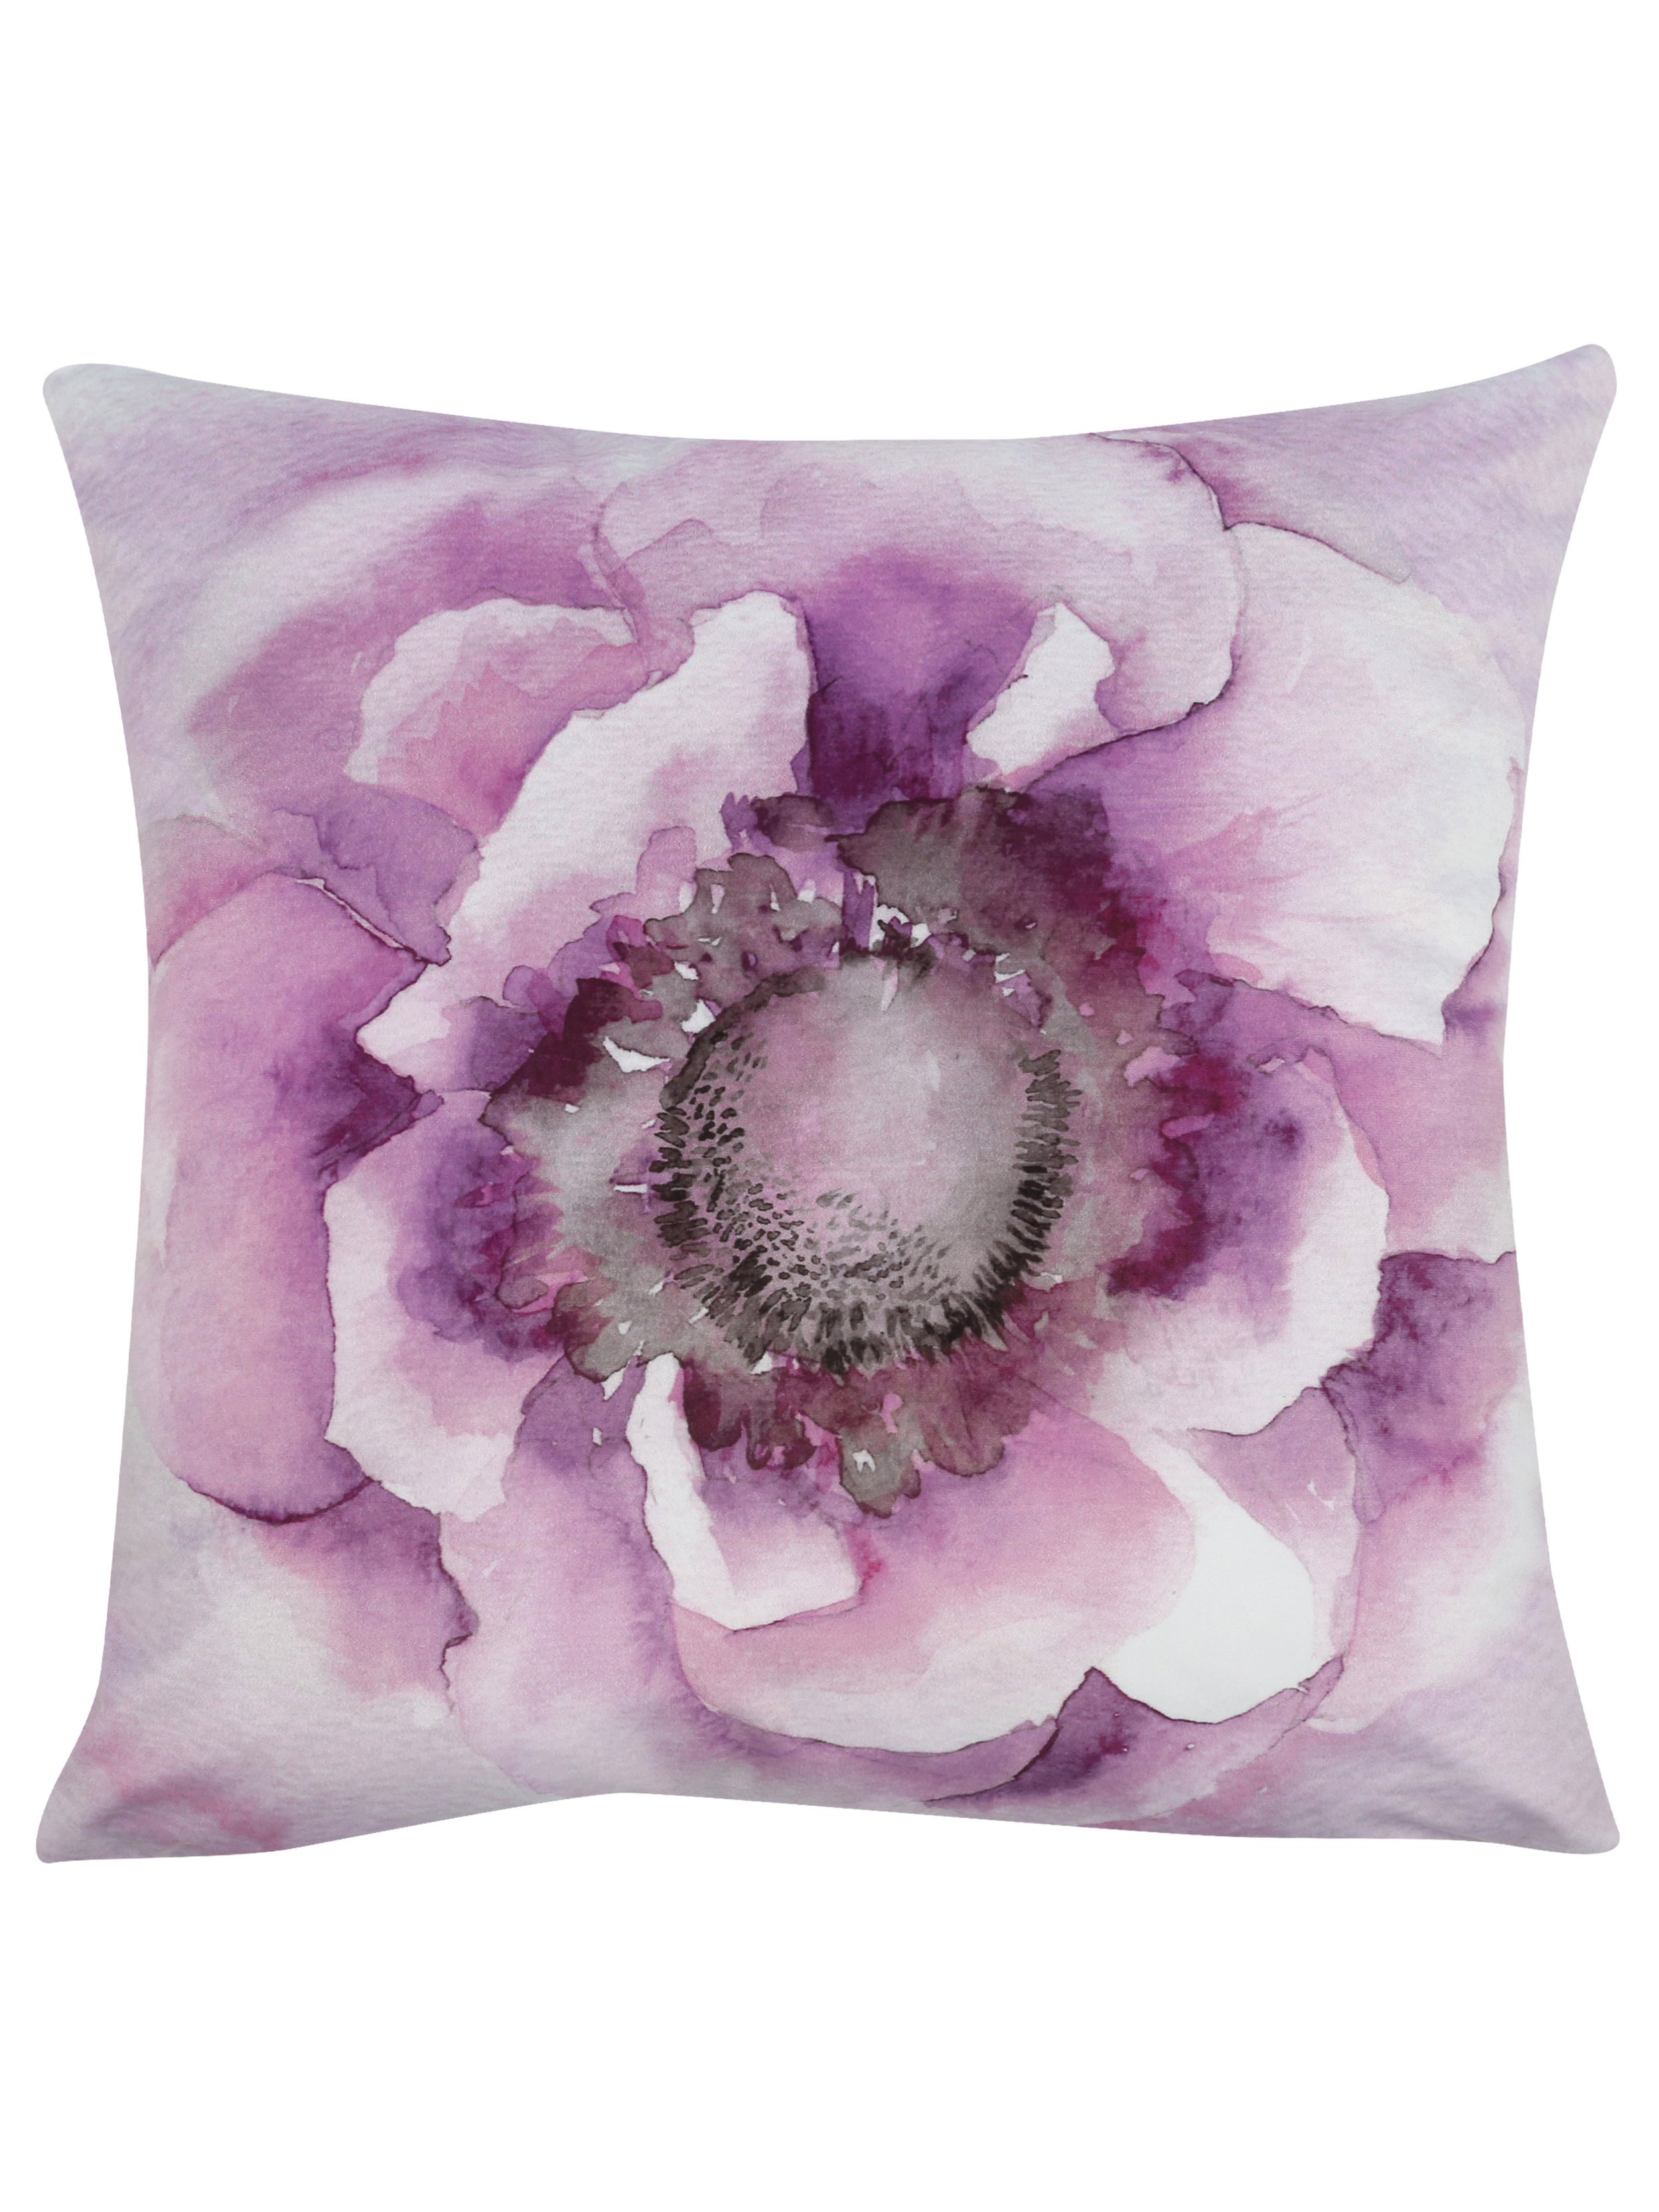 Lilac flower cushion, £19